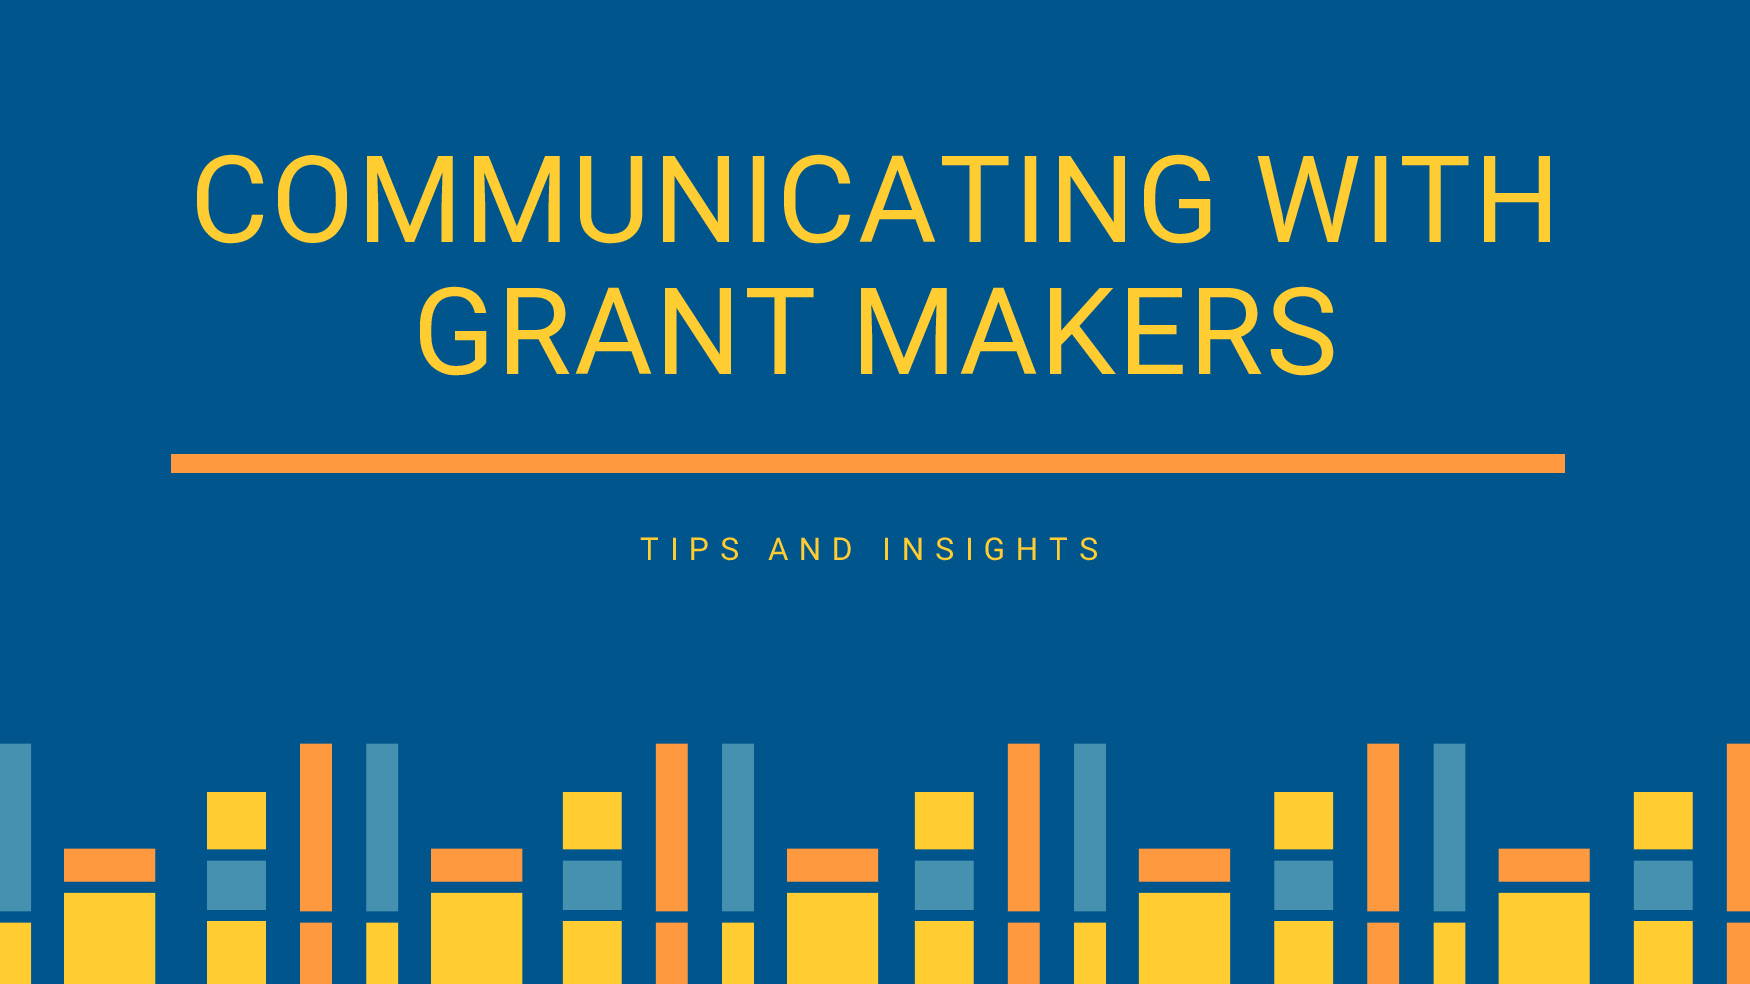 Communicating with Grant Makers   Tips and Insights